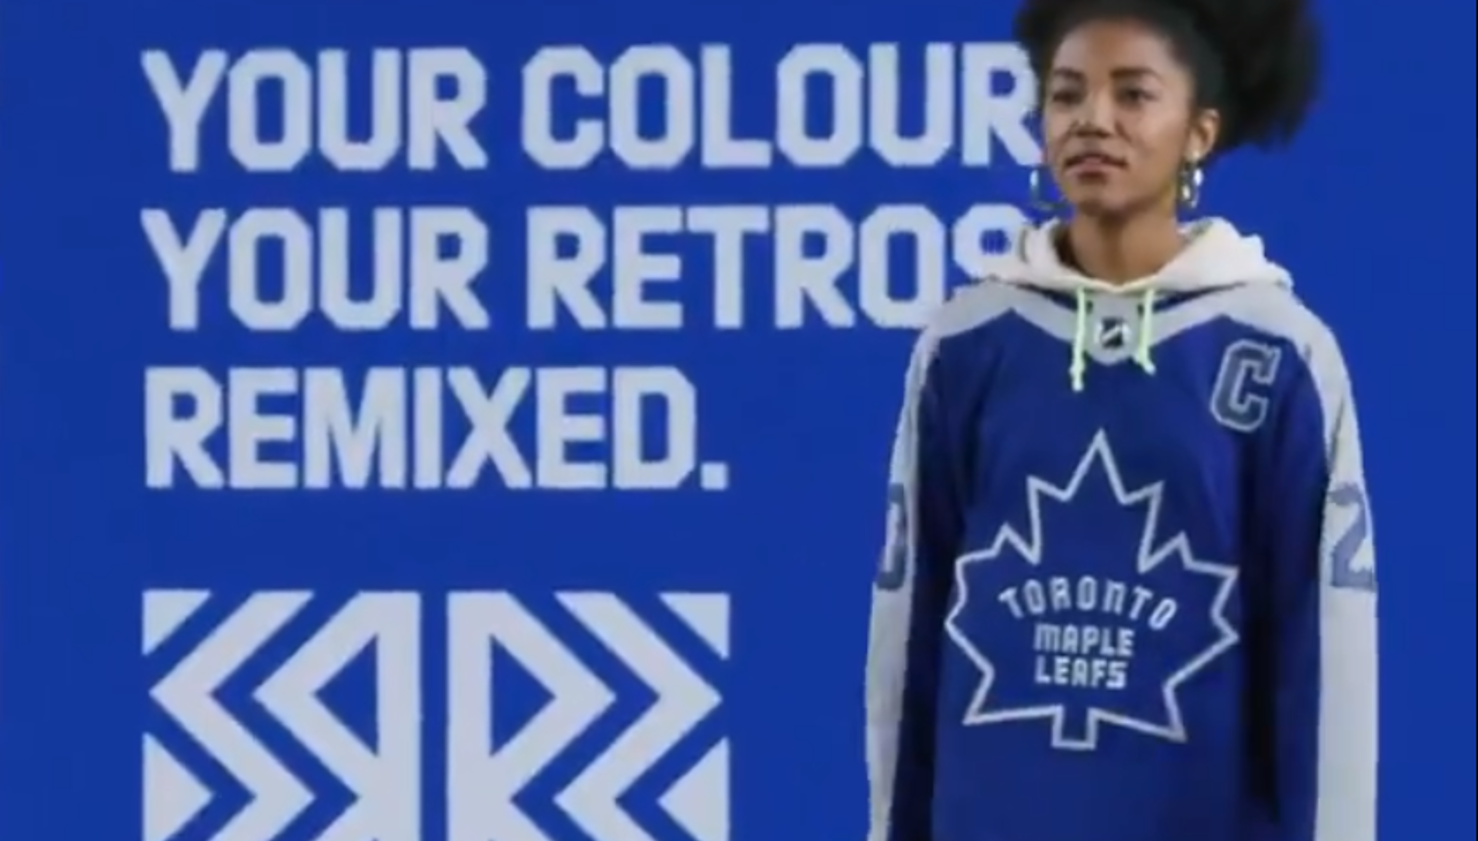 Leafs have a new jersey and we hope they never wear it ...